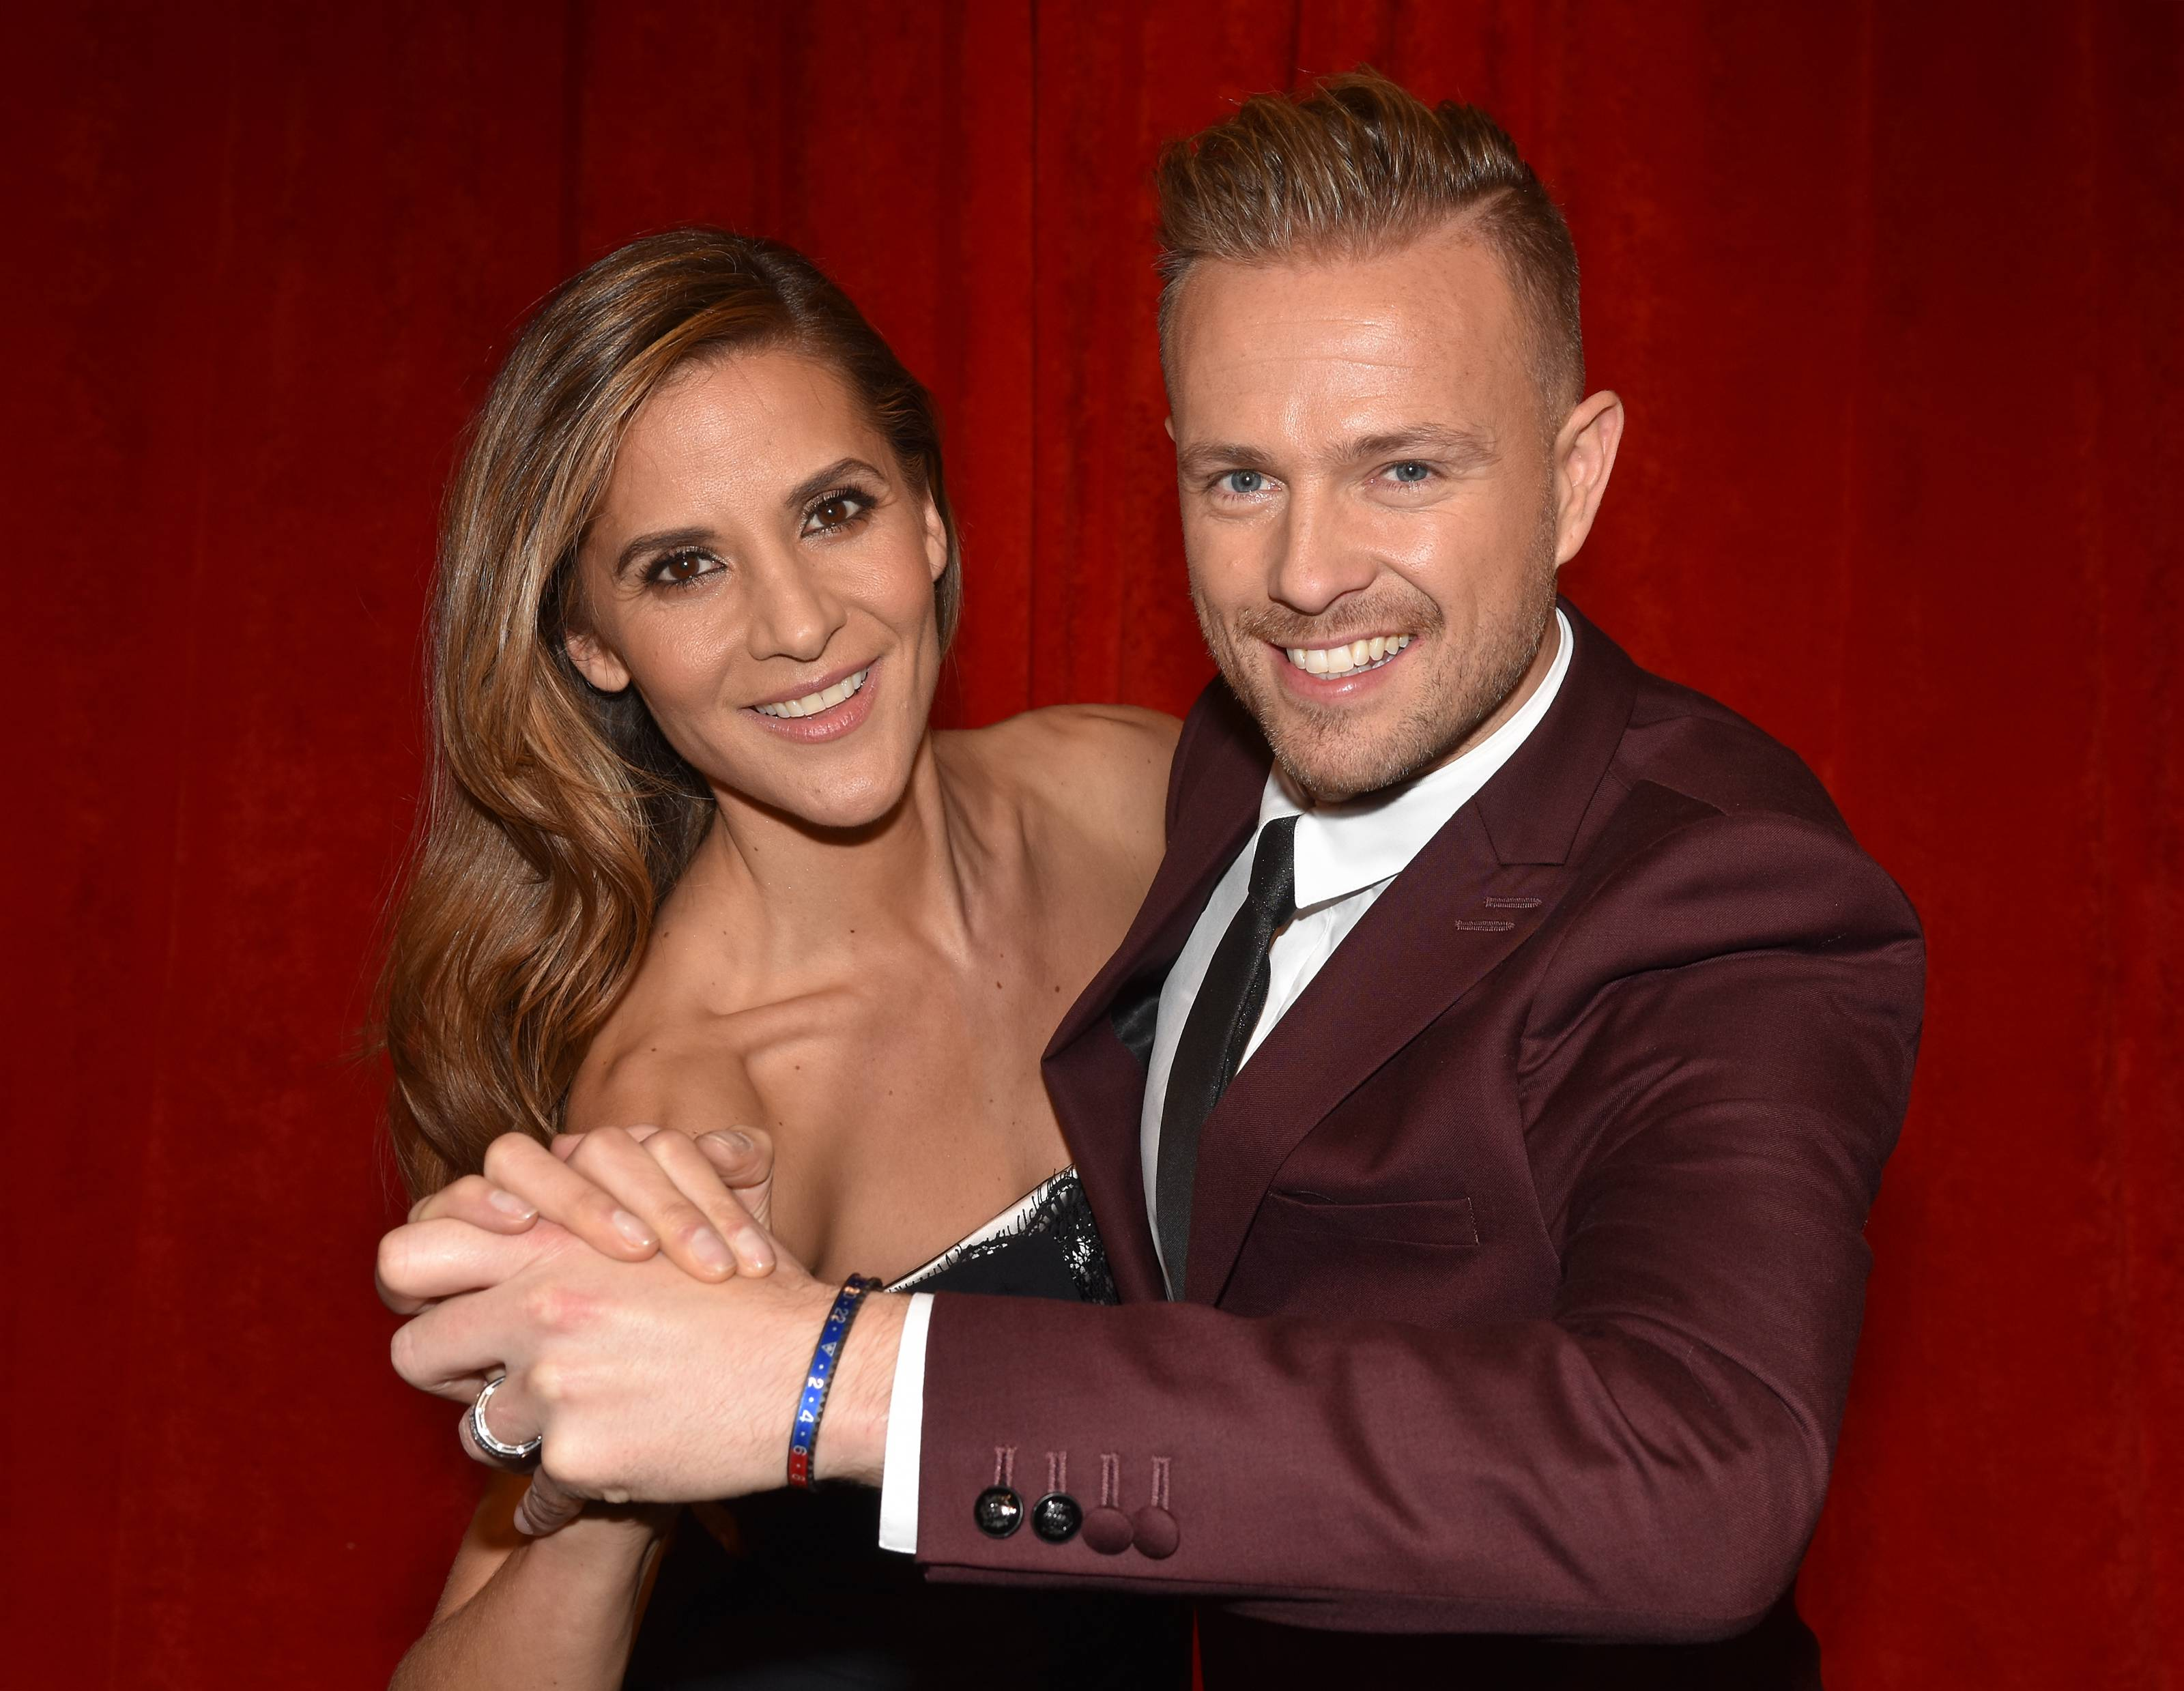 Will we be seeing Amanda & Nicky together next again? Pic: VIP Ireland